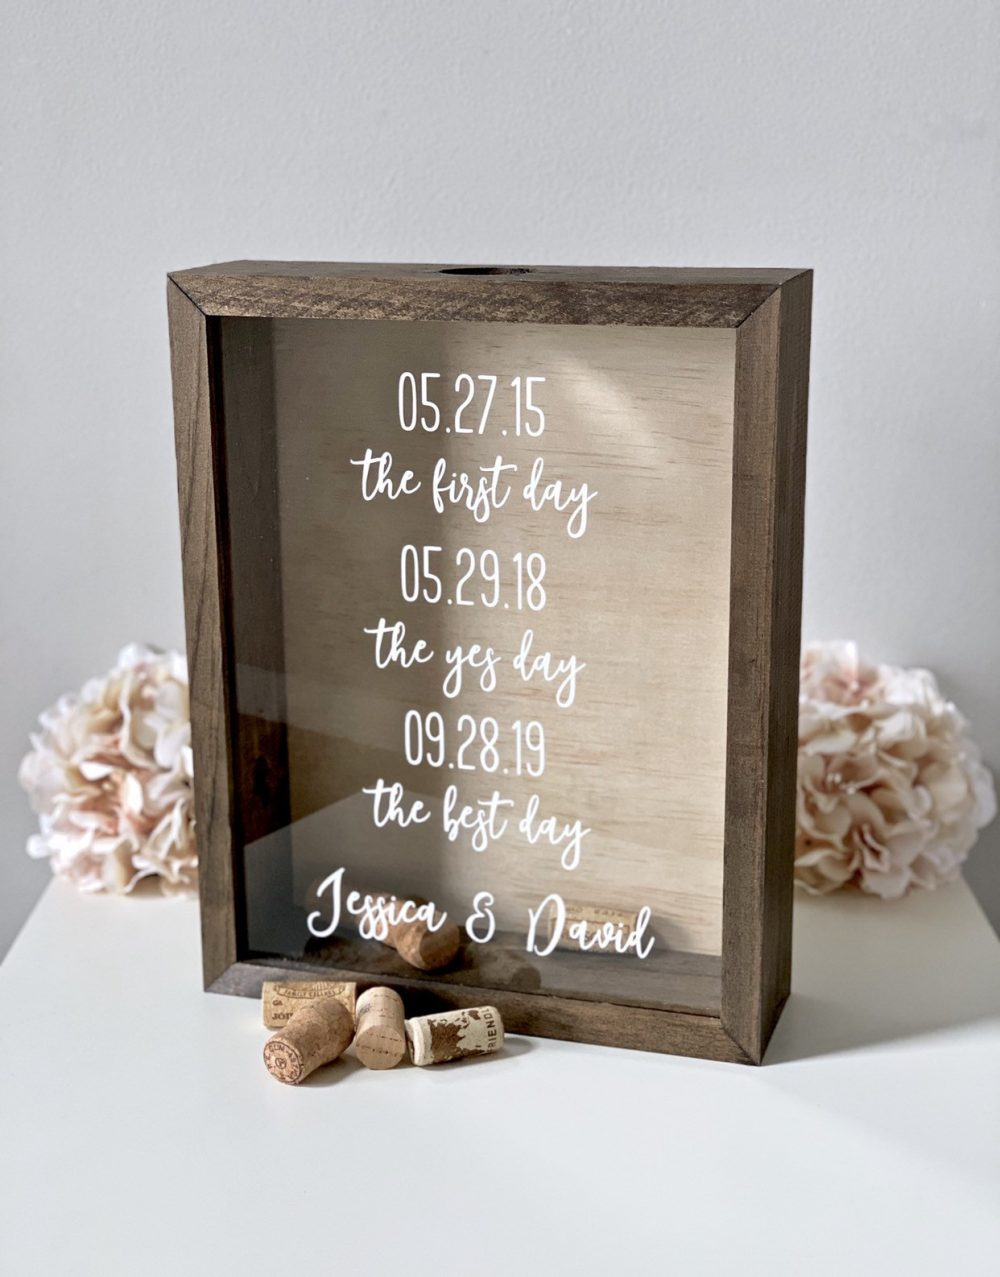 Wine Cork Holder | Guest Book Alternative Bridal Shower Gift Wedding Idea Shadow Box Display Holds Corks, Photos, Messages & More